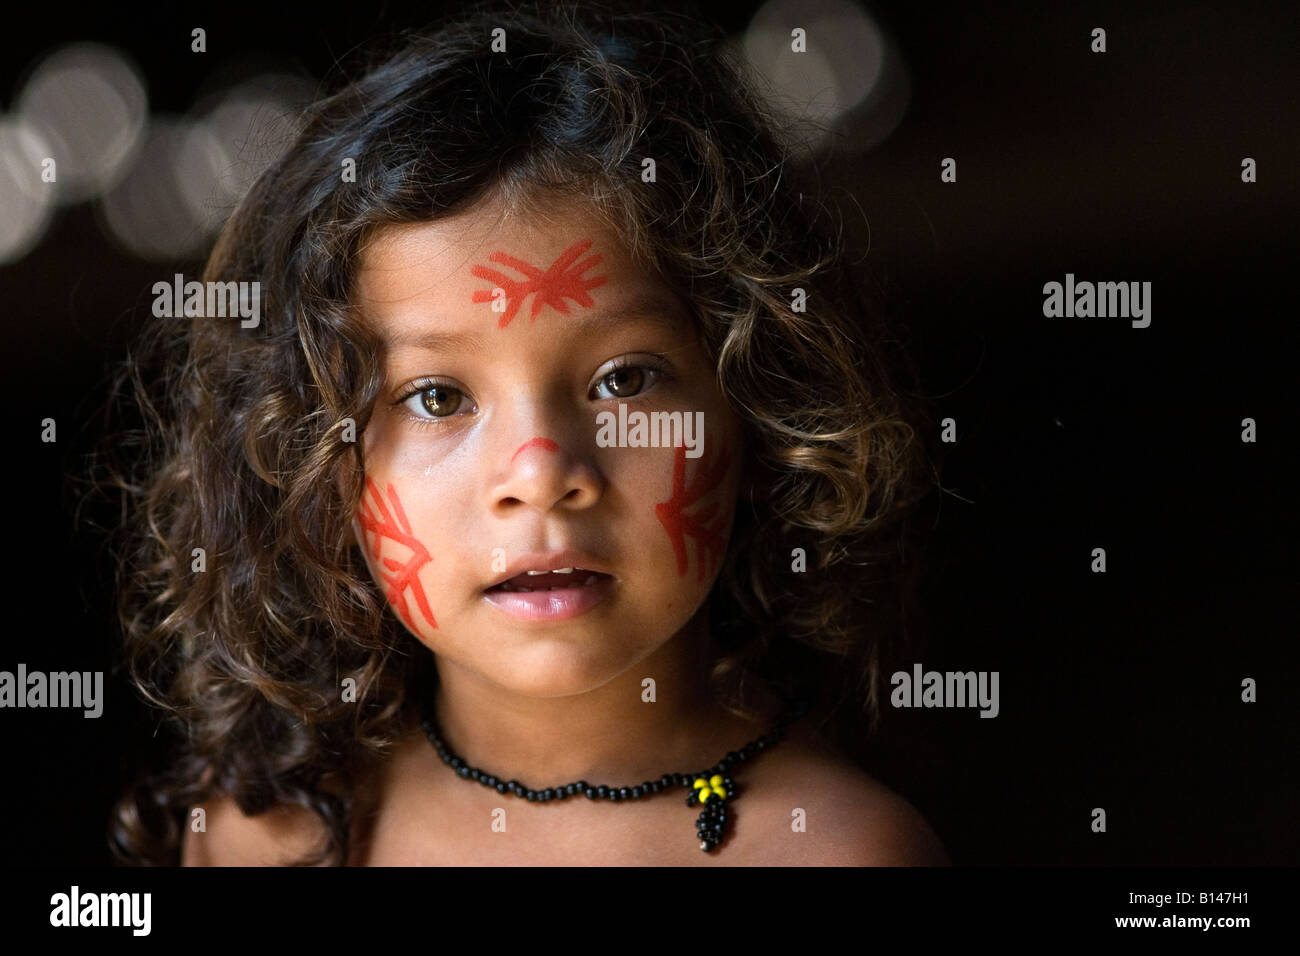 A young girl from the Tucanos tribe. - Stock Image